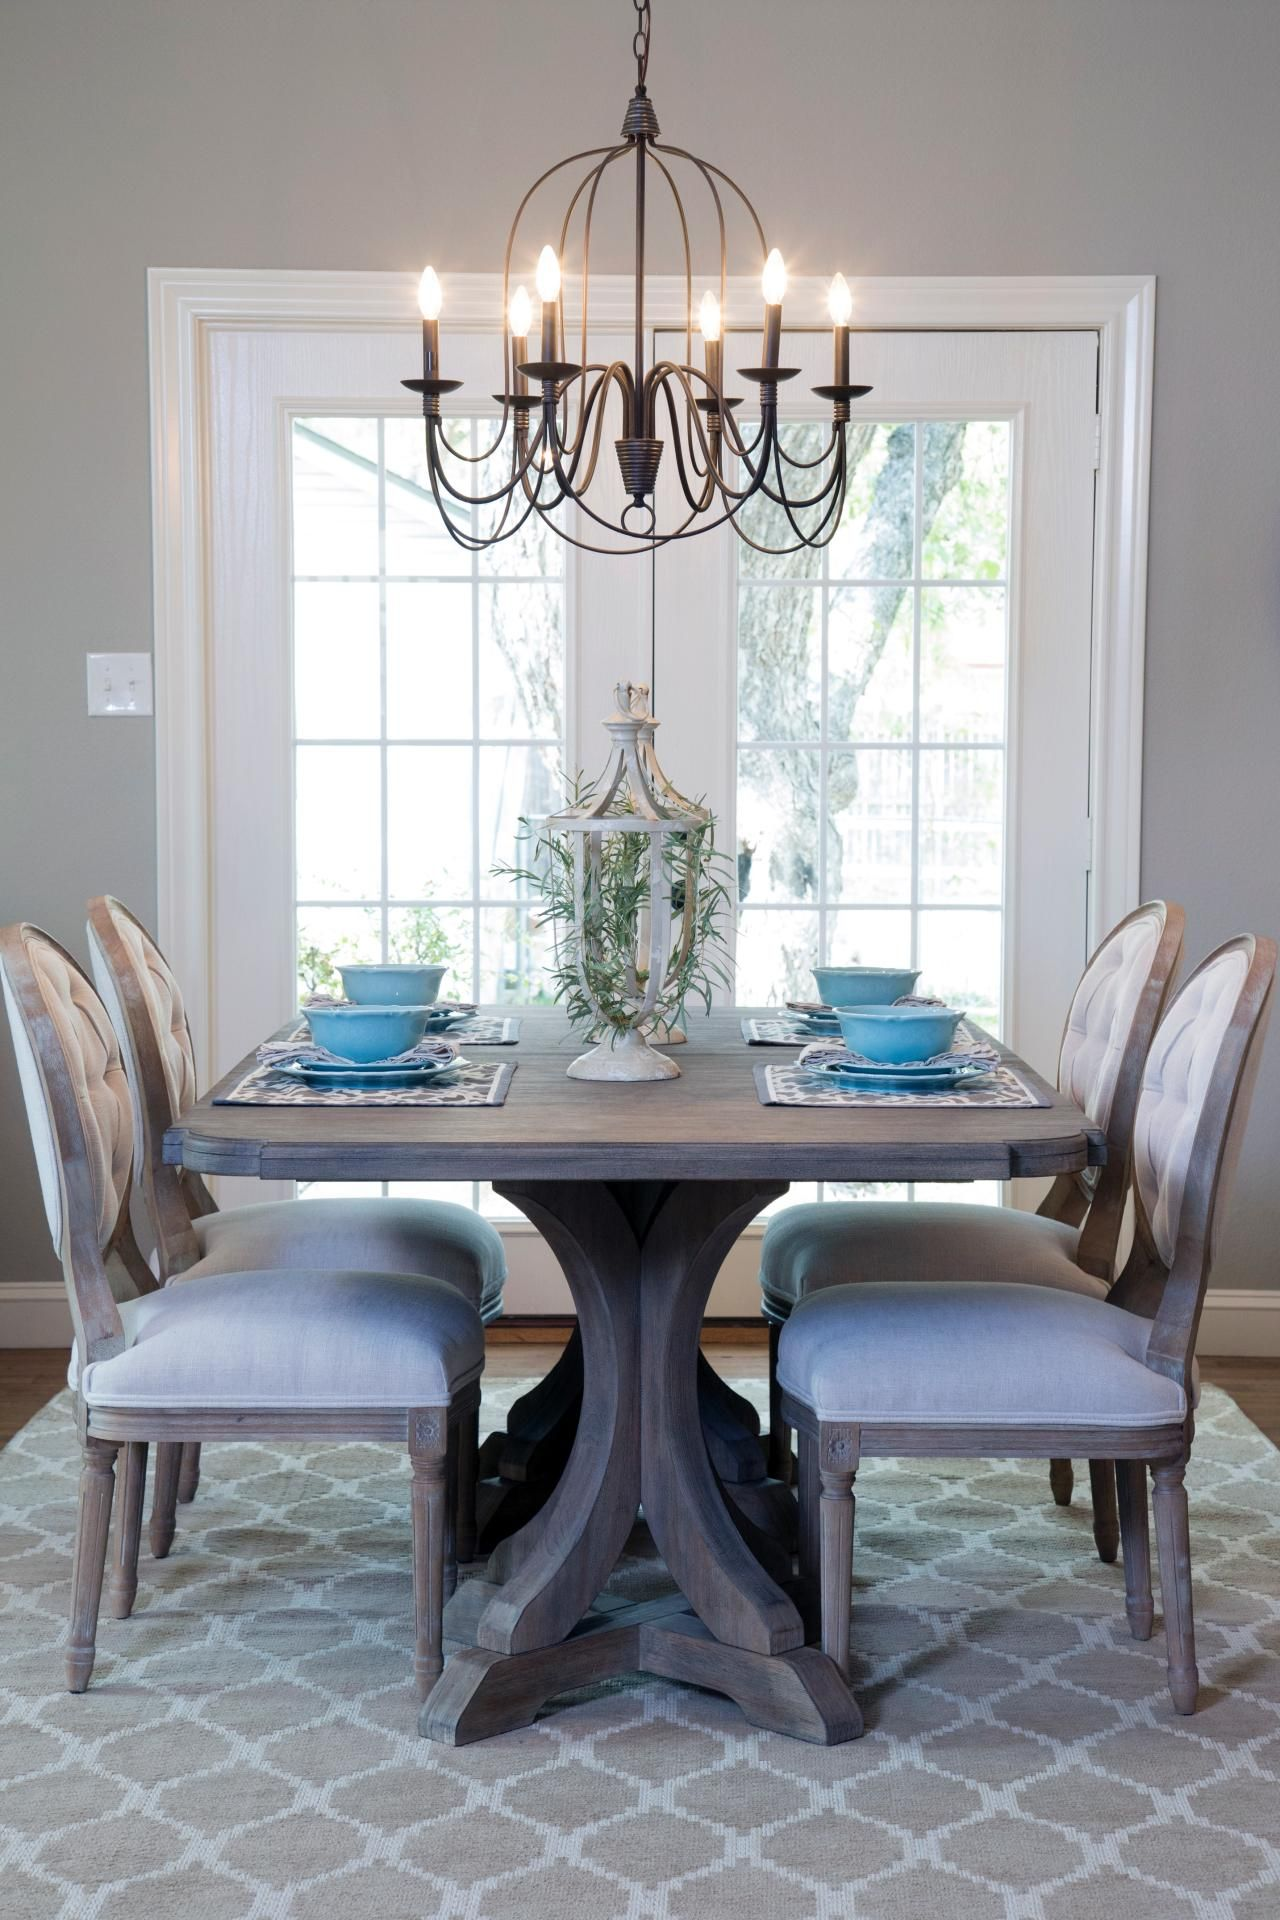 a 1940s vintage fixer upper for first time homebuyers joanna a 1940s vintage fixer upper for first time homebuyers table and chairsdining